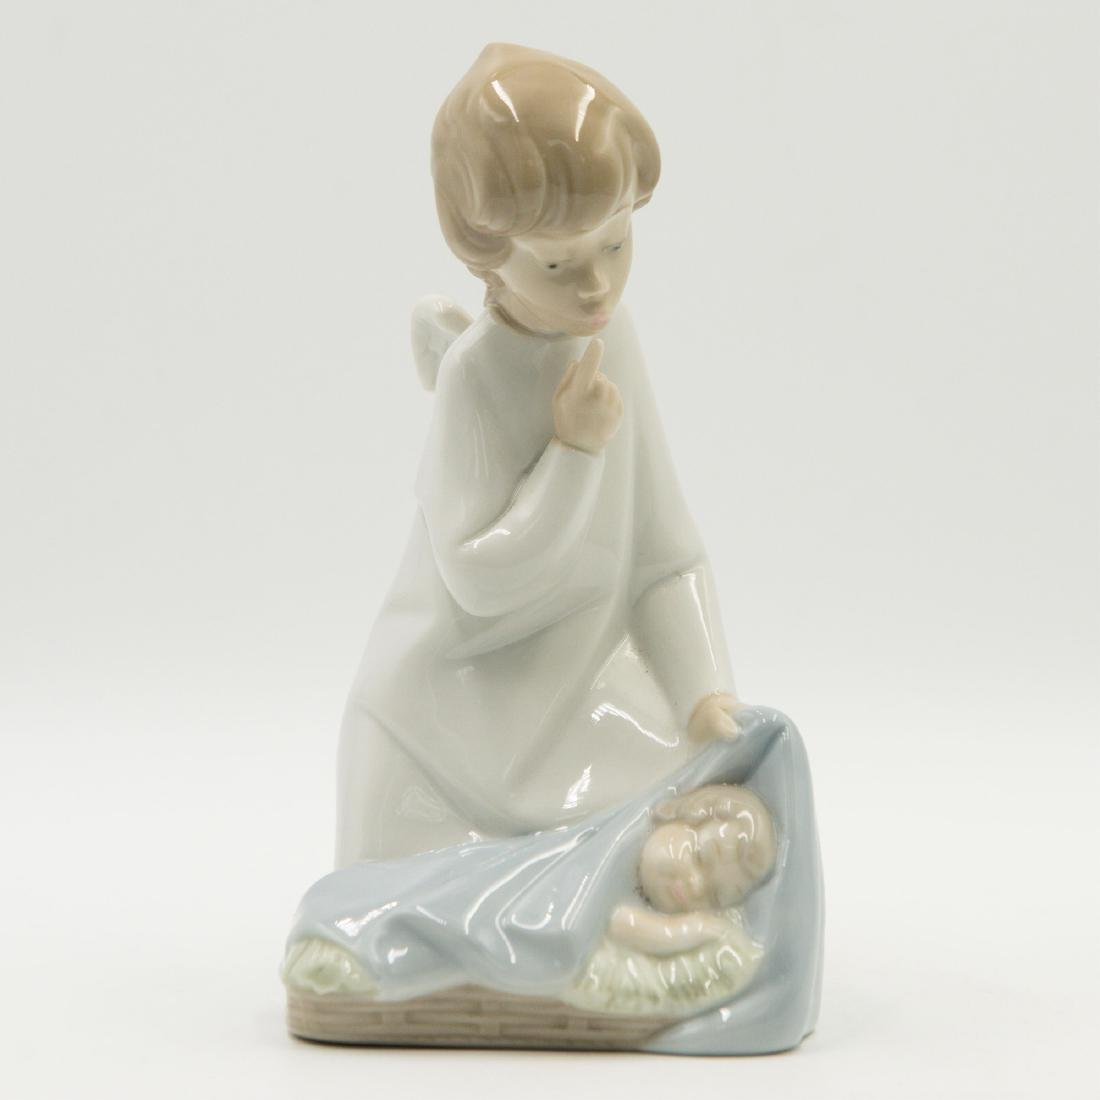 LLADRO ANGEL WITH BABY 4635 FIGURINE